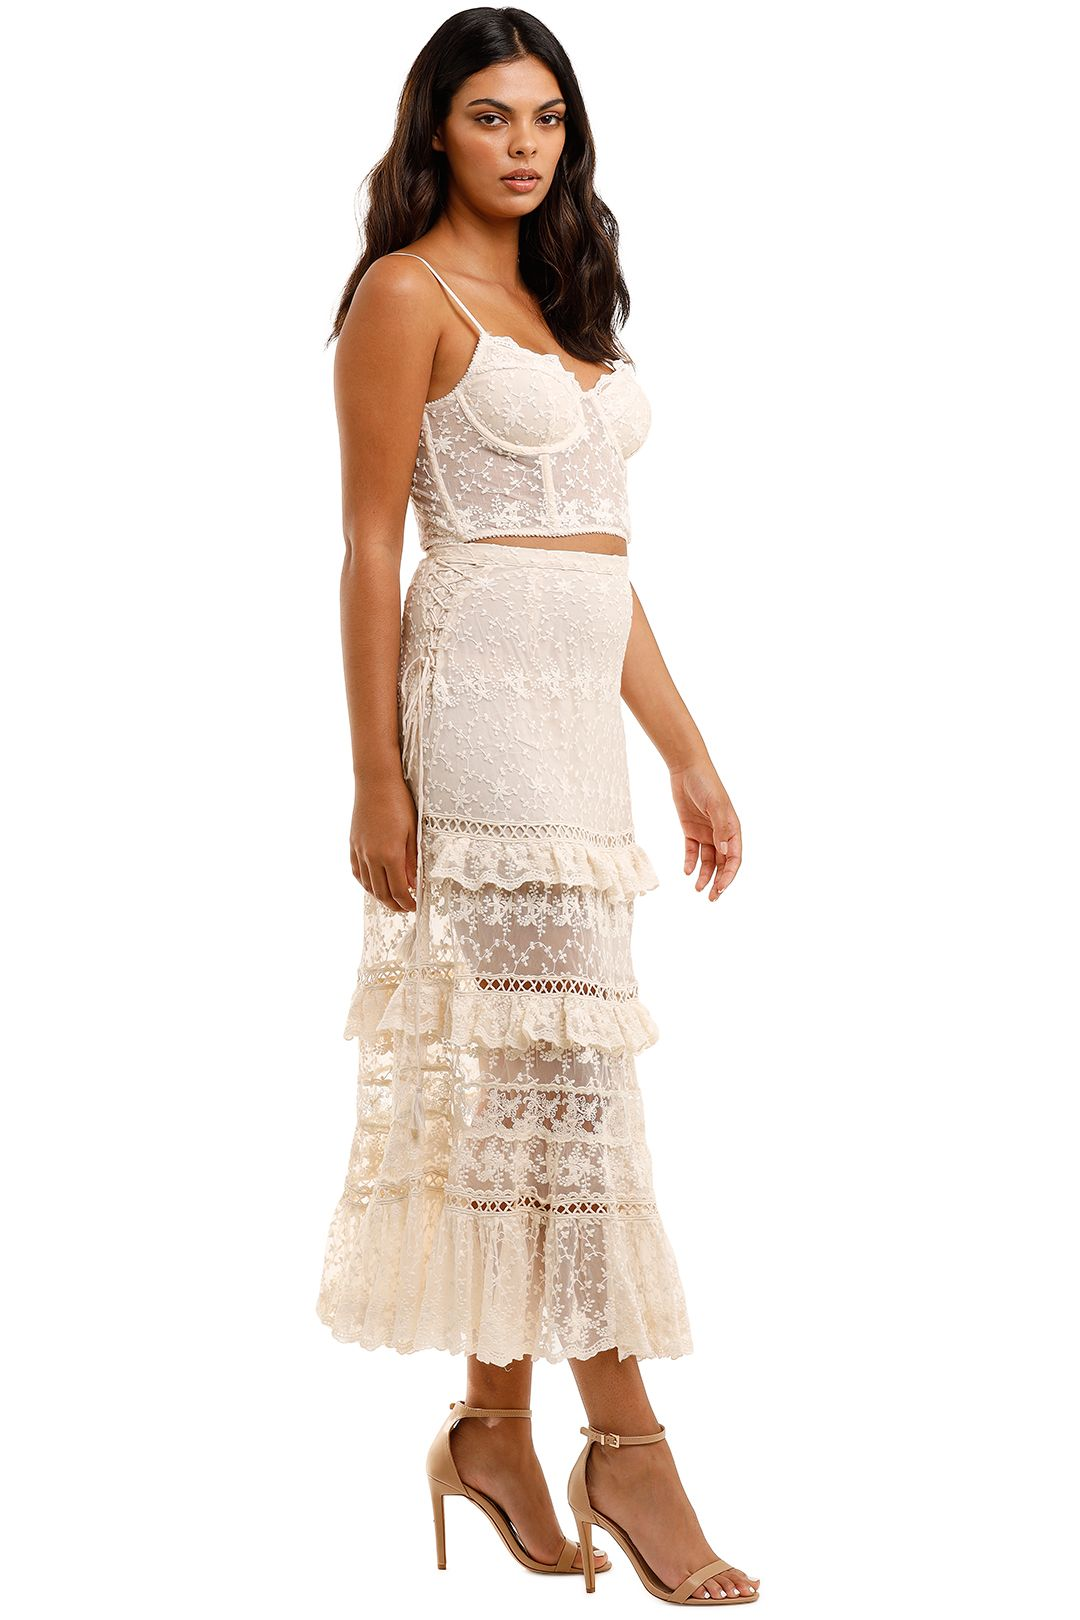 Spell Le Gauze Lace Tiered Skirt and Bustier Set Off White